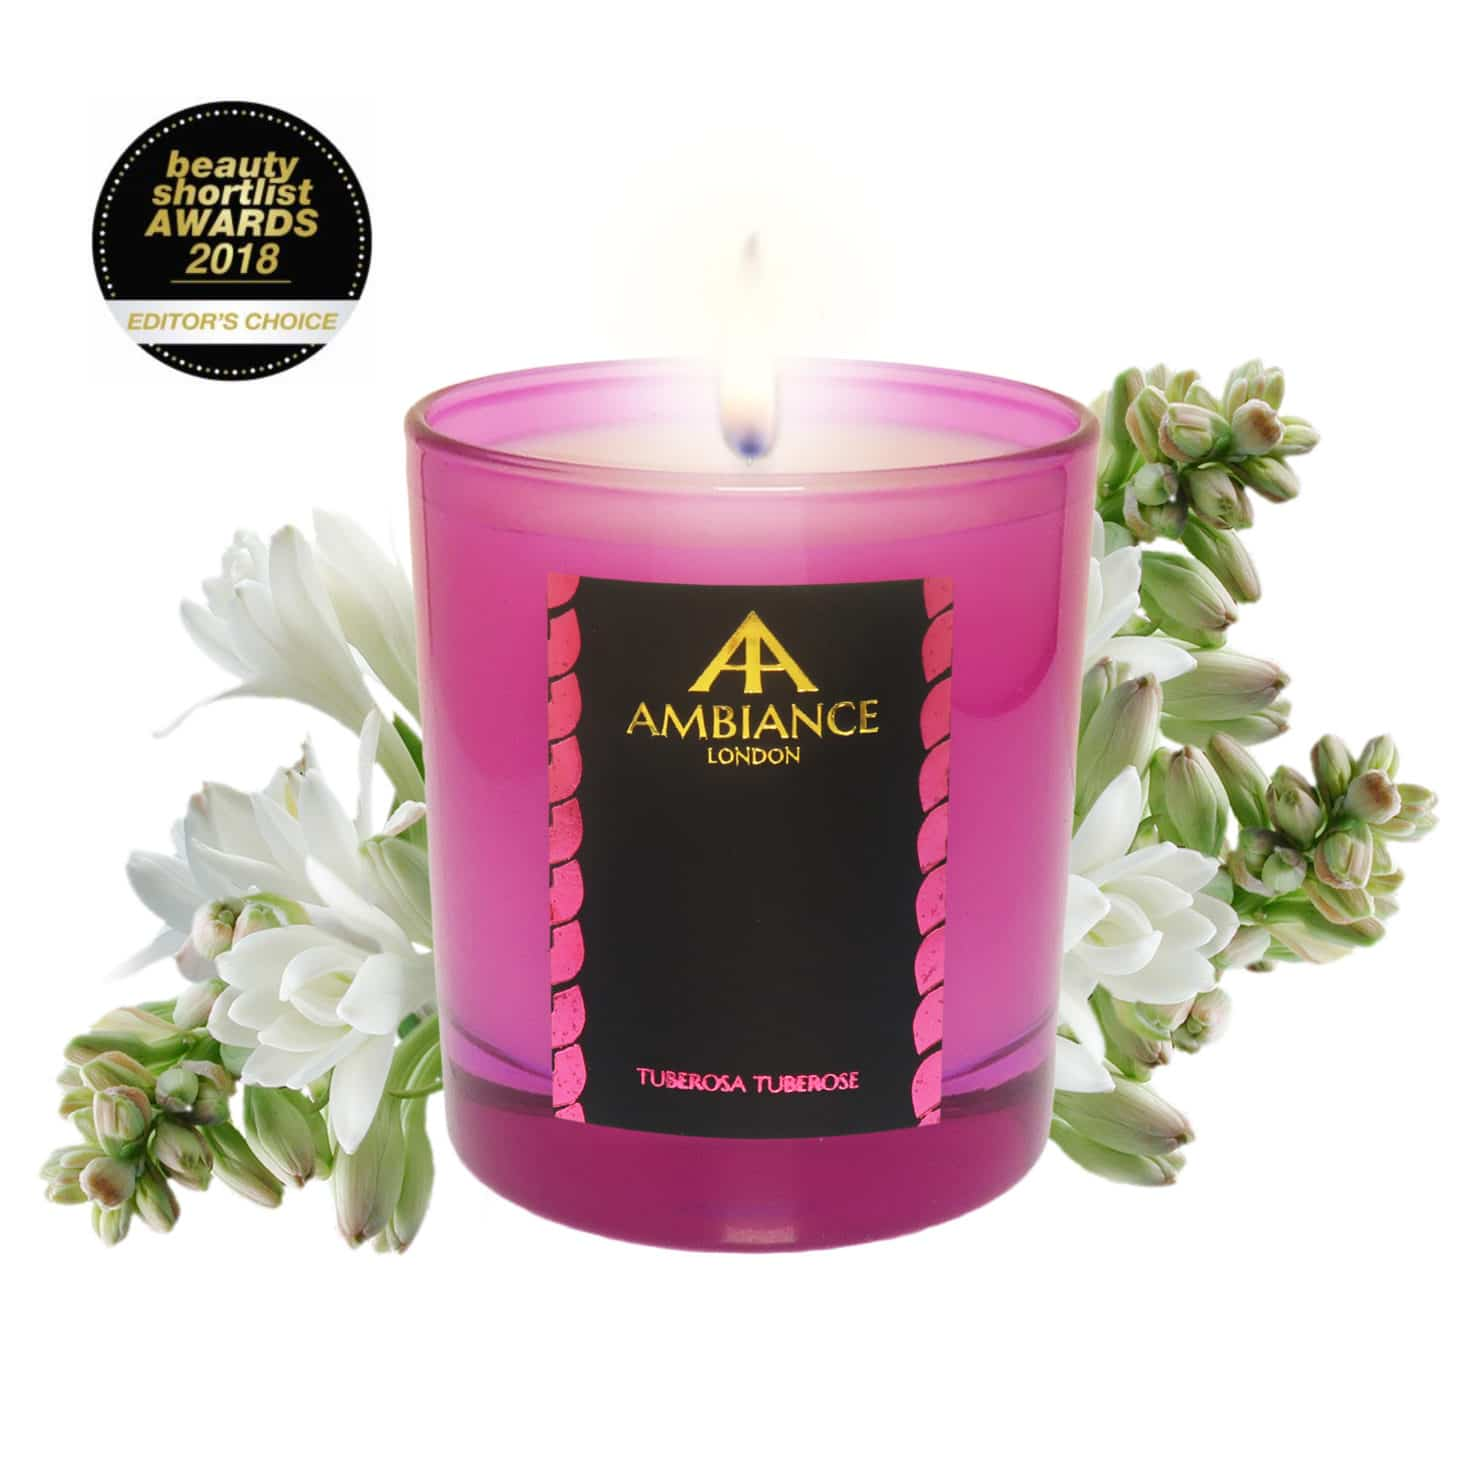 ancienne ambiance tuberosa tuberose luxury scented candle - limited edition - beauty short list awards